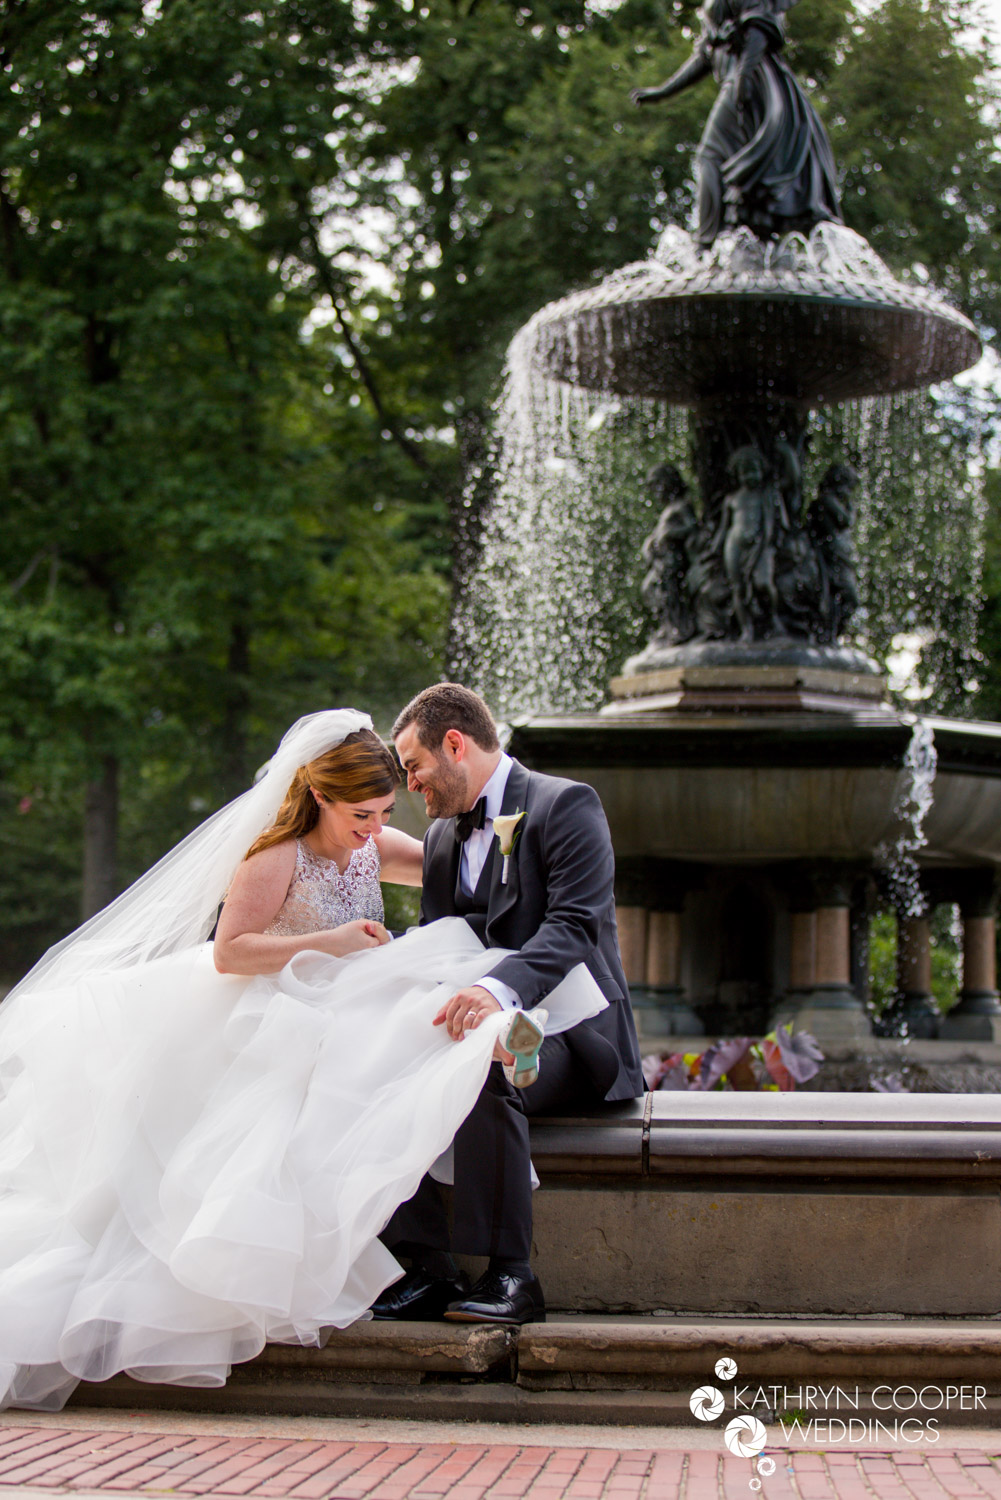 NYC elopement photographer catches cute bride and groom under Bethesda Fountain